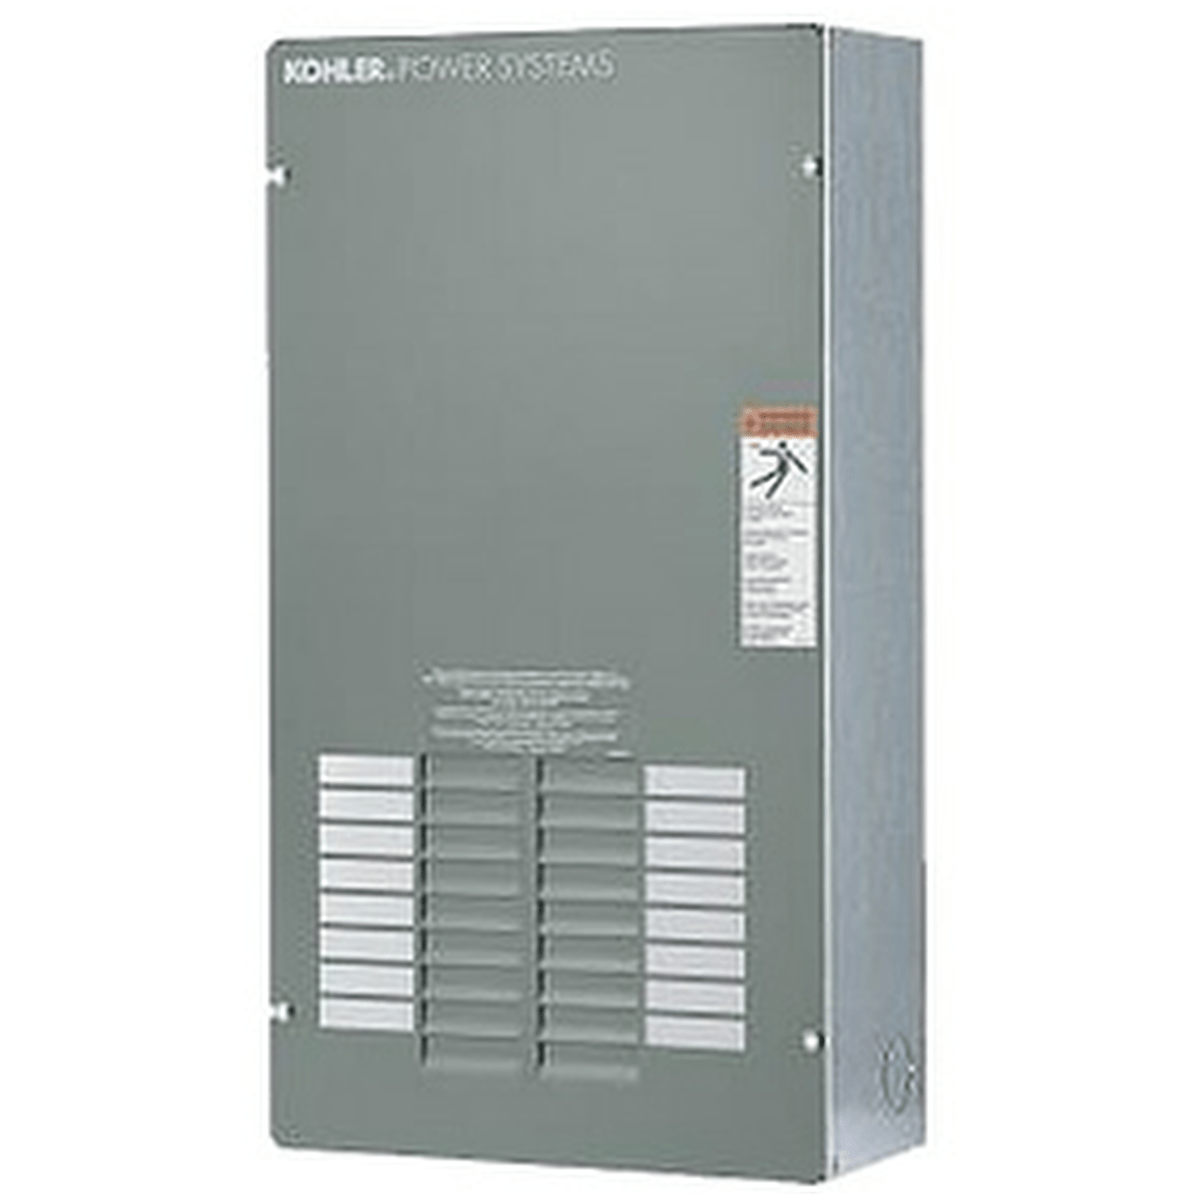 hight resolution of kohler gm85273 100a 1 120 240v nema 1 automatic transfer switch with 12